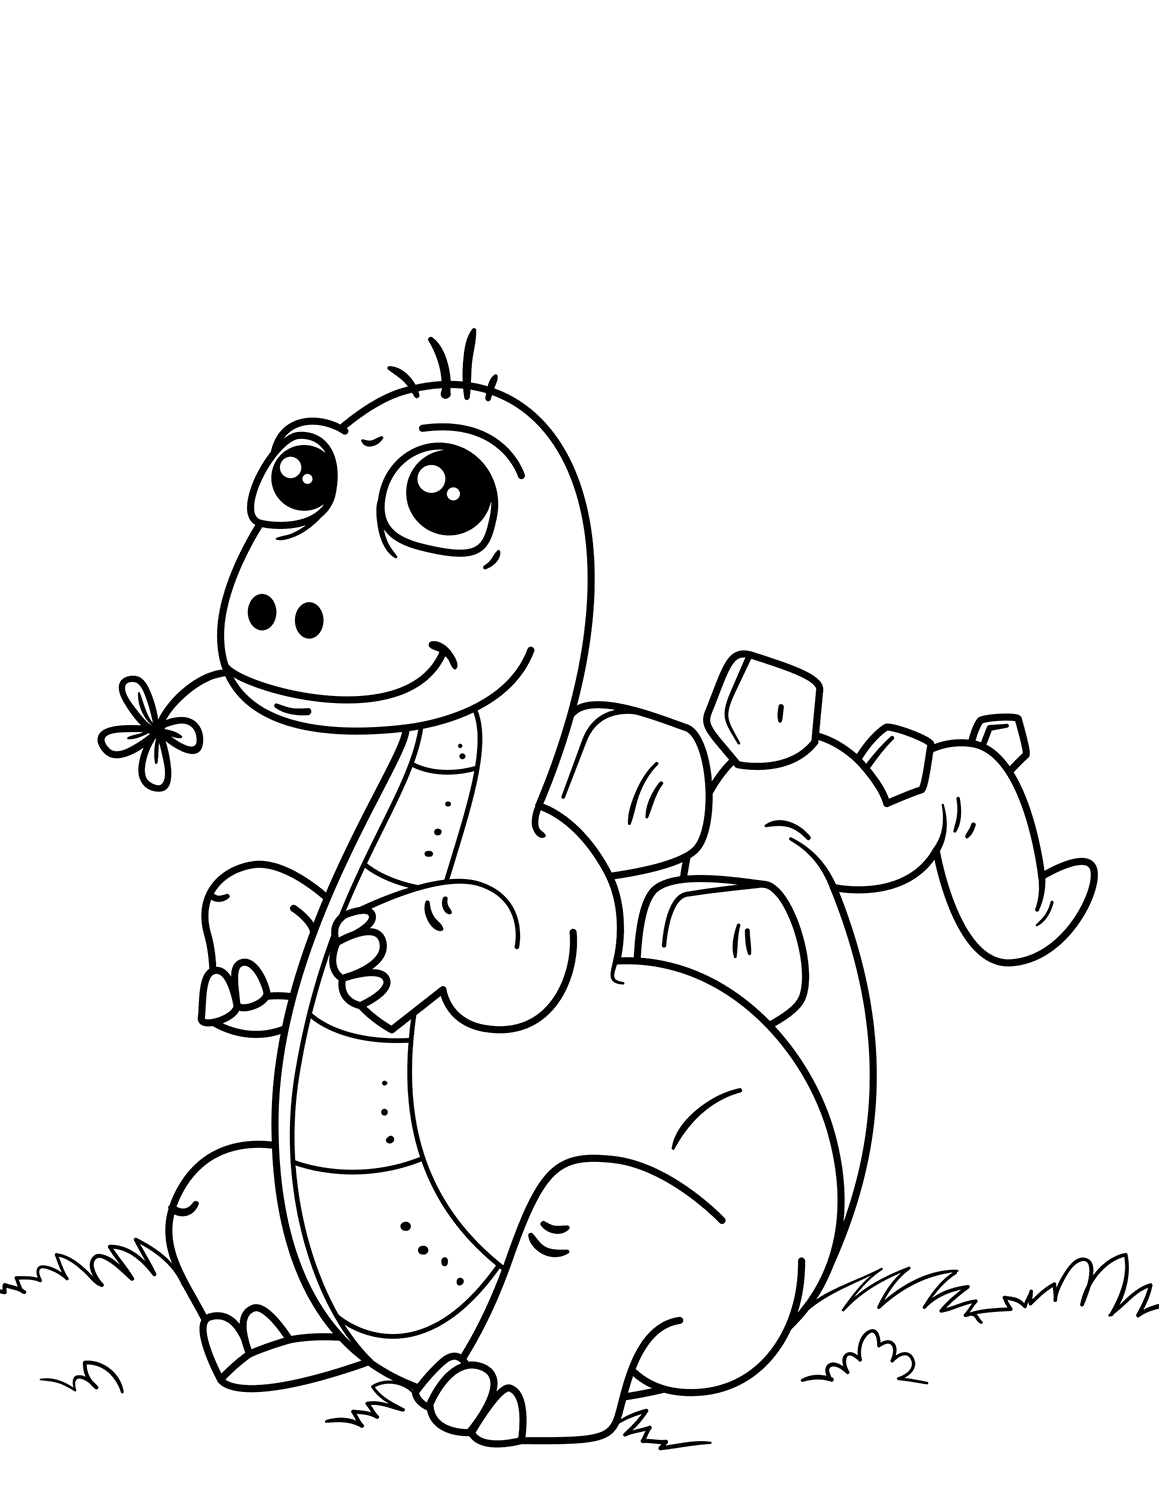 dinosaur coloring easy dinosaurs to color for kids ba dinosaurs kids coloring coloring easy dinosaur